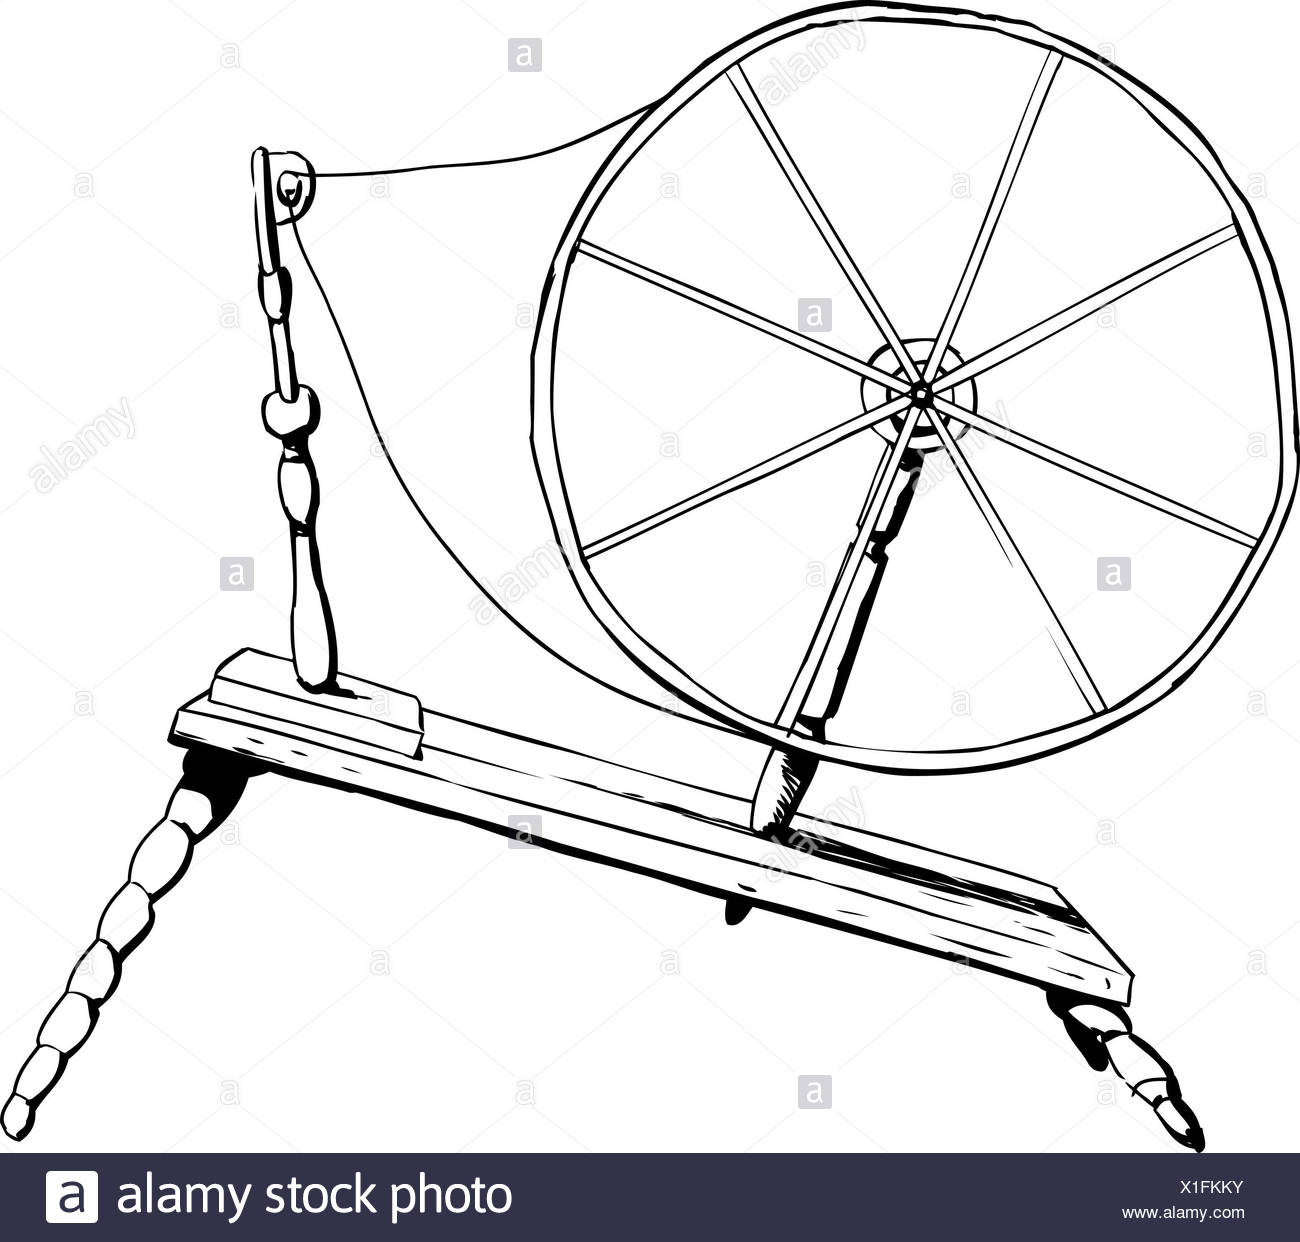 Spinning Wheel Black and White Stock Photos & Images - Alamy